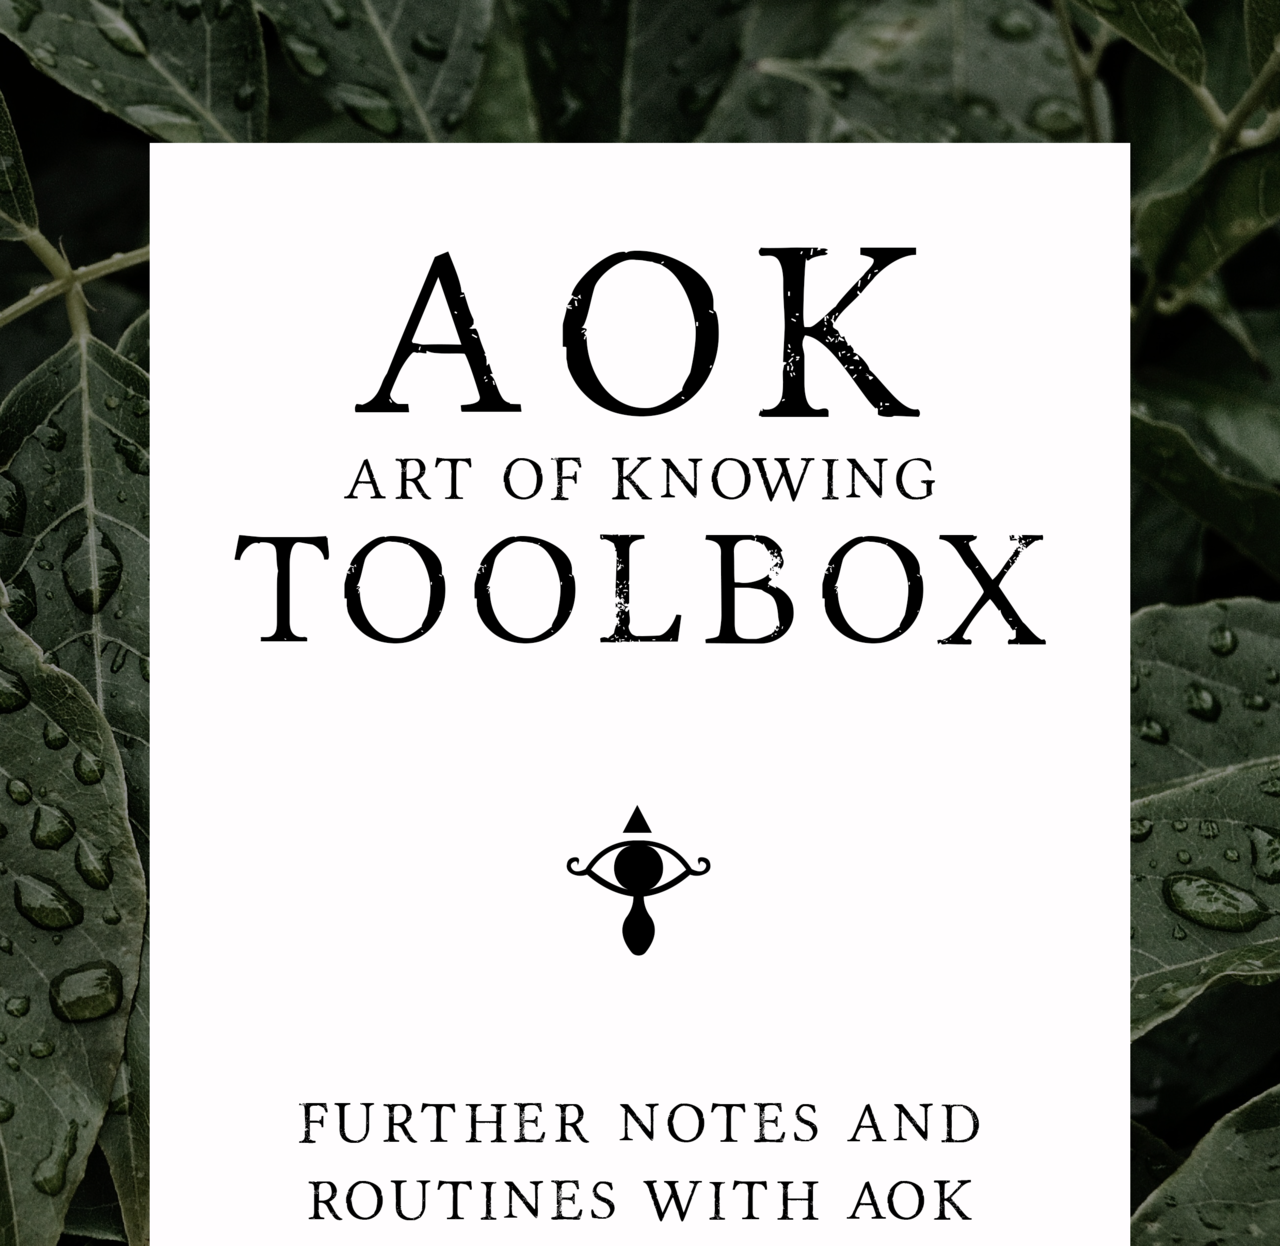 AOK Toolbox by Lewis Le Val (PDF Download)